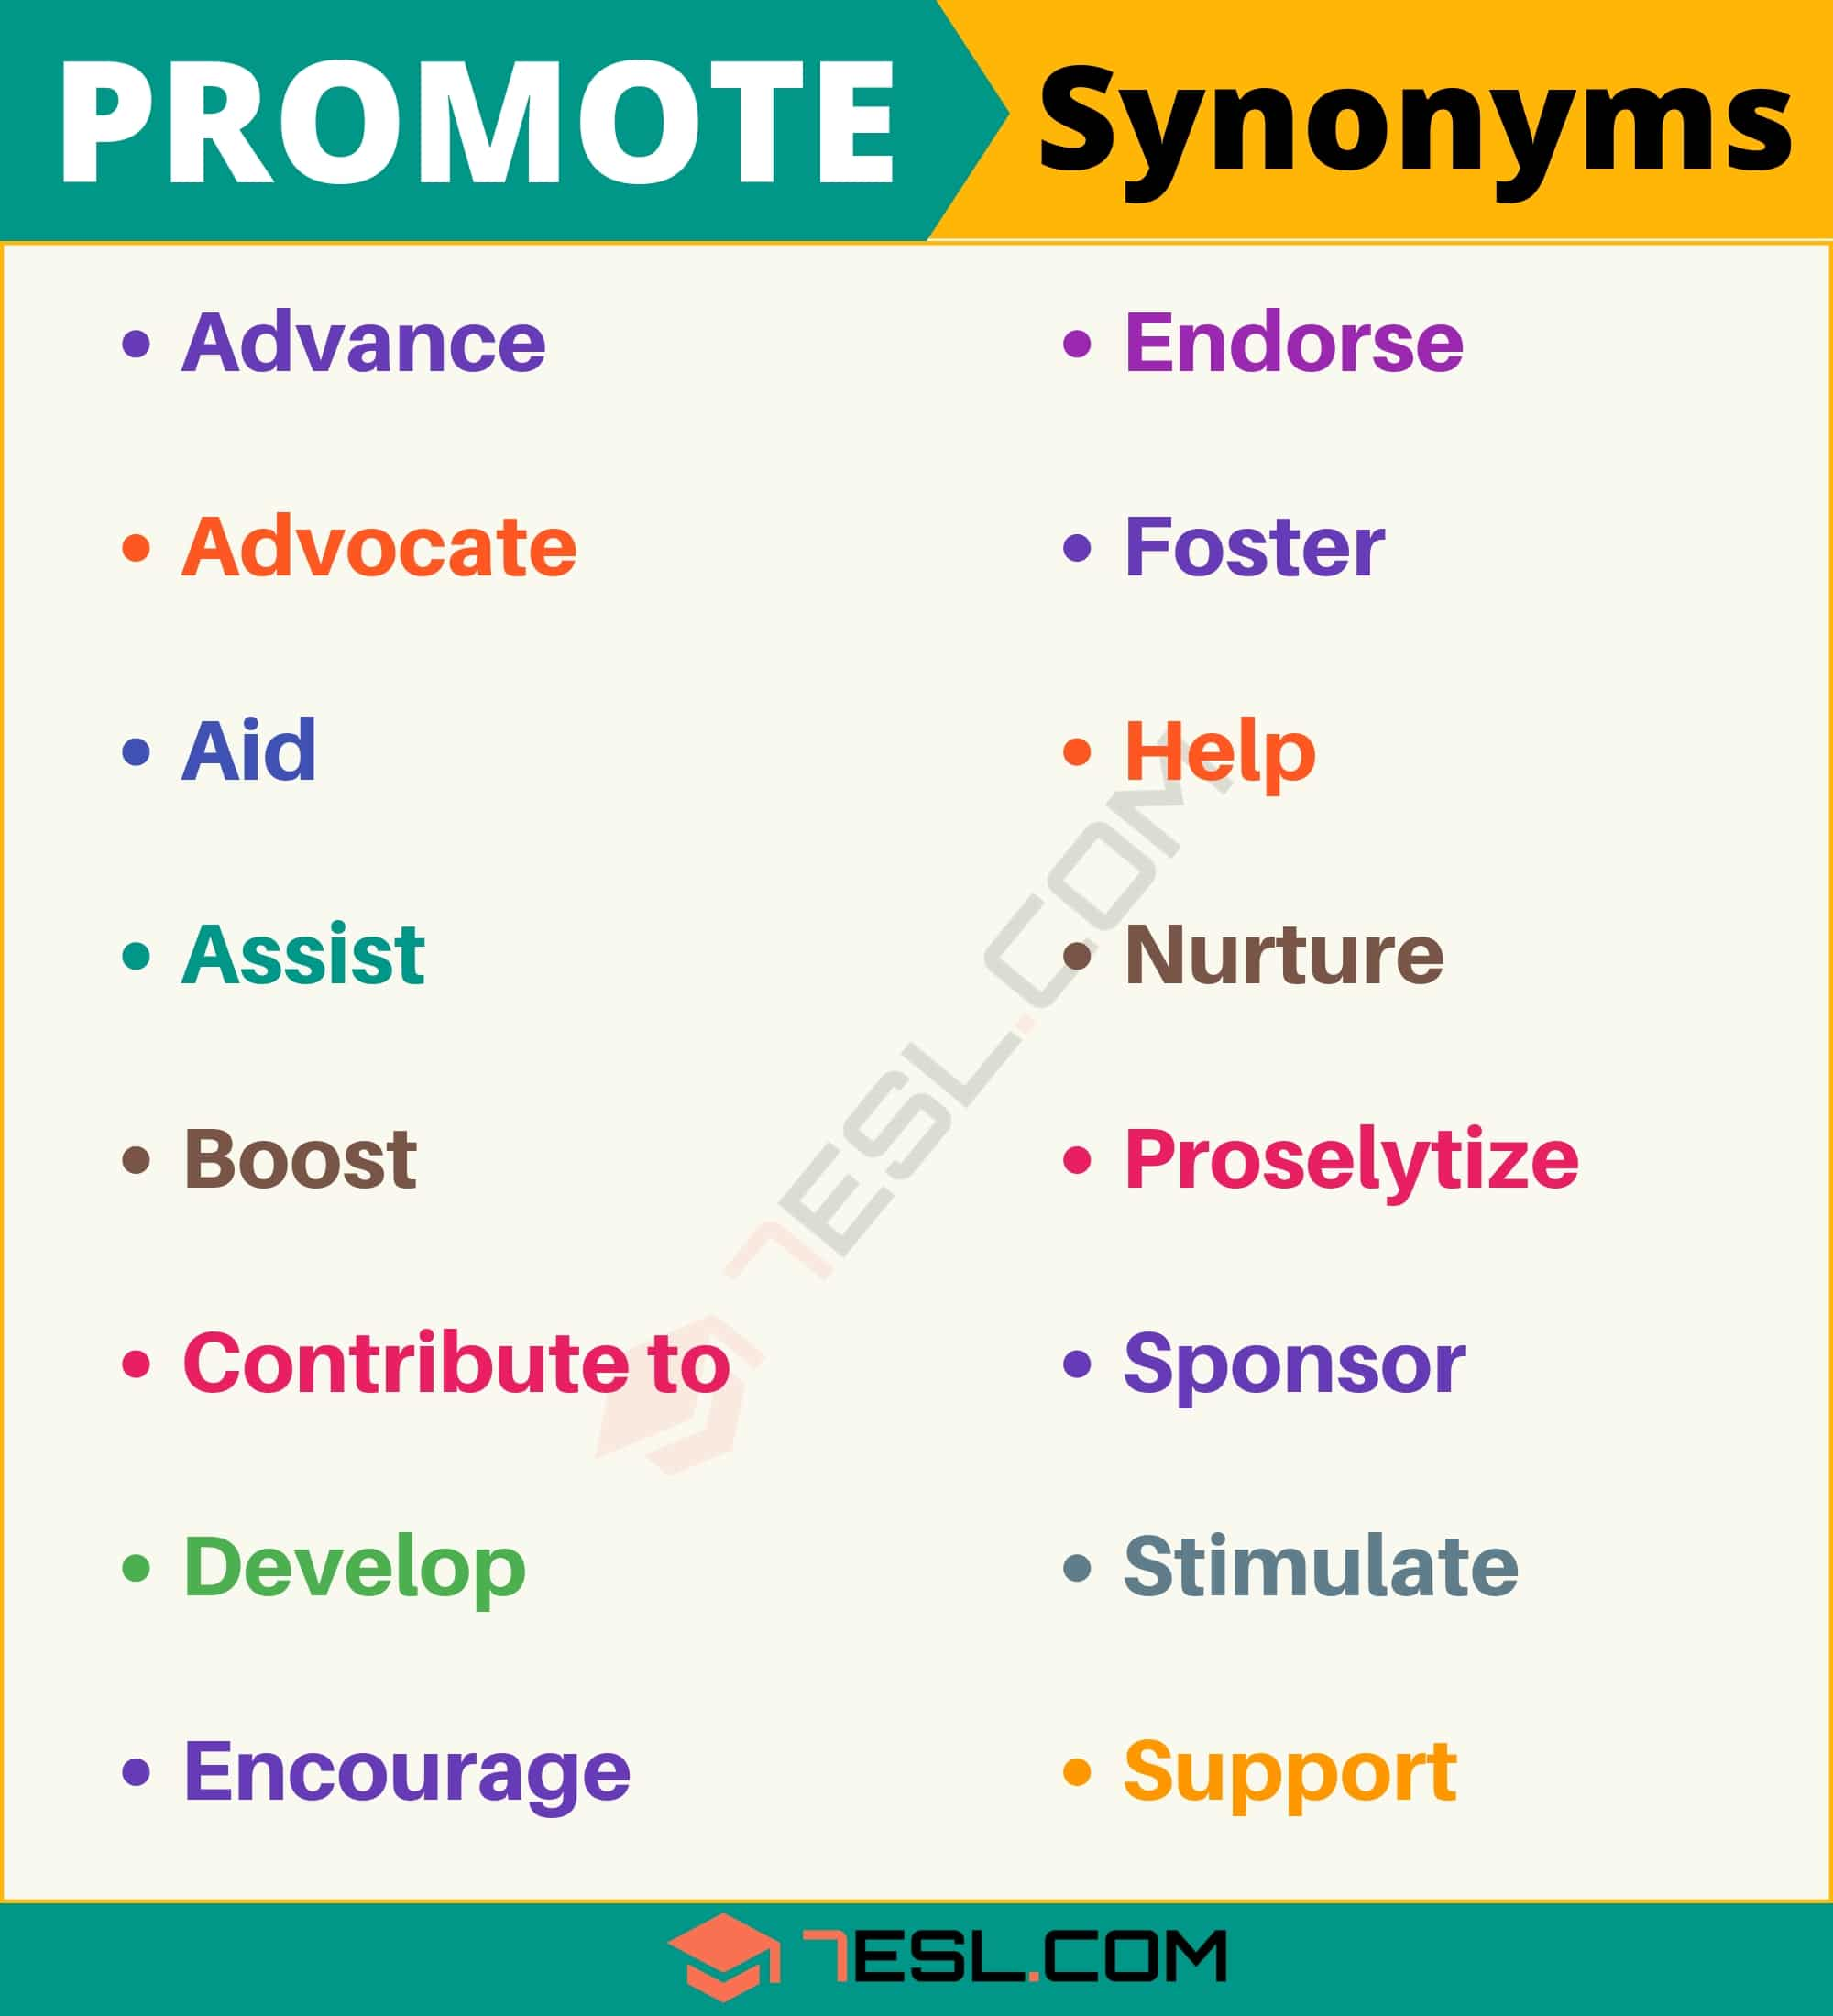 PROMOTE Synonym: List of 17 Synonyms for Promote with Useful Examples